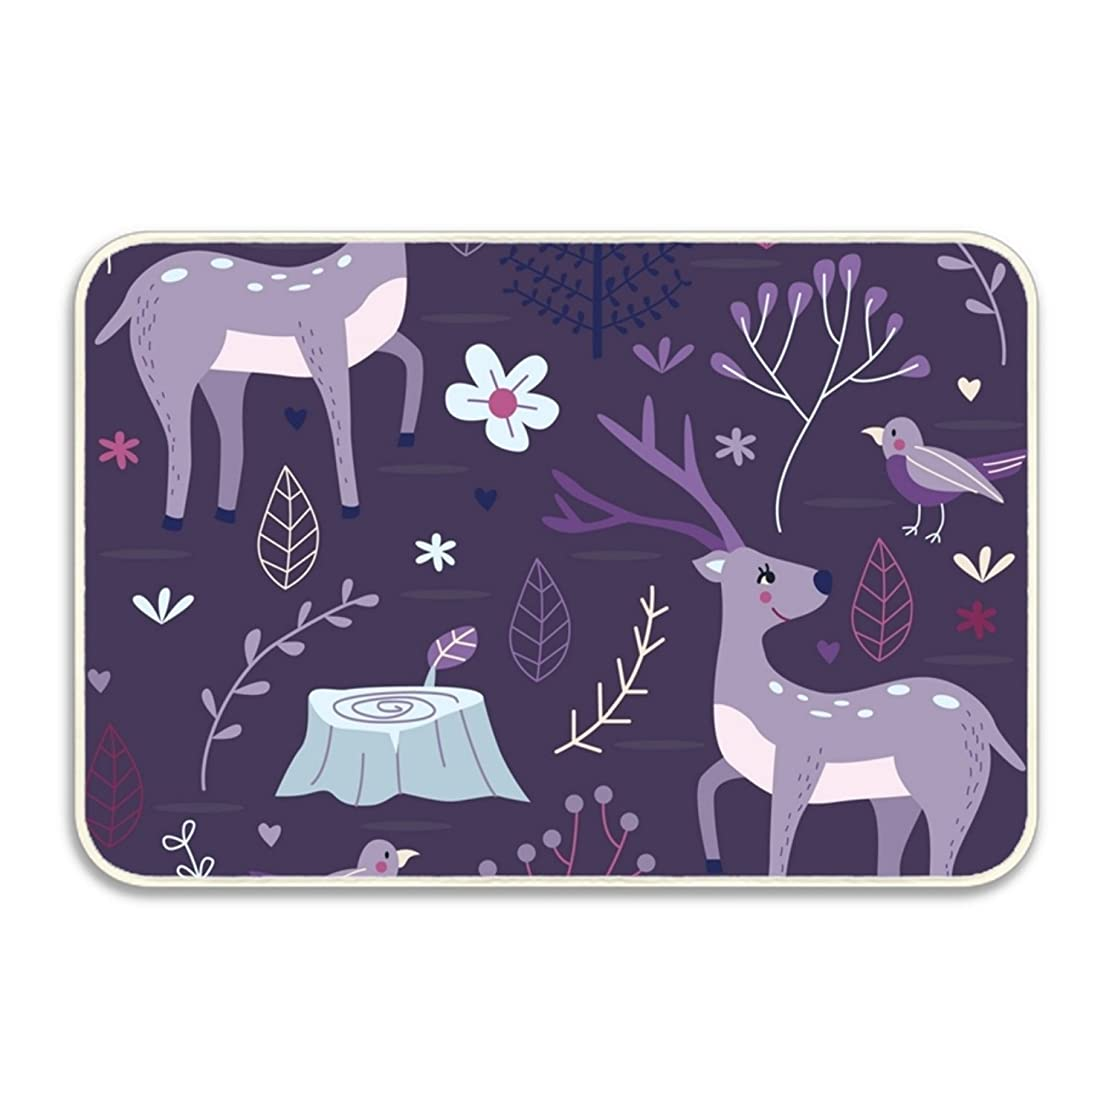 yyoungsell Purple Forest With Deer Entrance Rug Rubber Floor Mats Washable Doormat Shoe Scraper For Home suggxmhc1